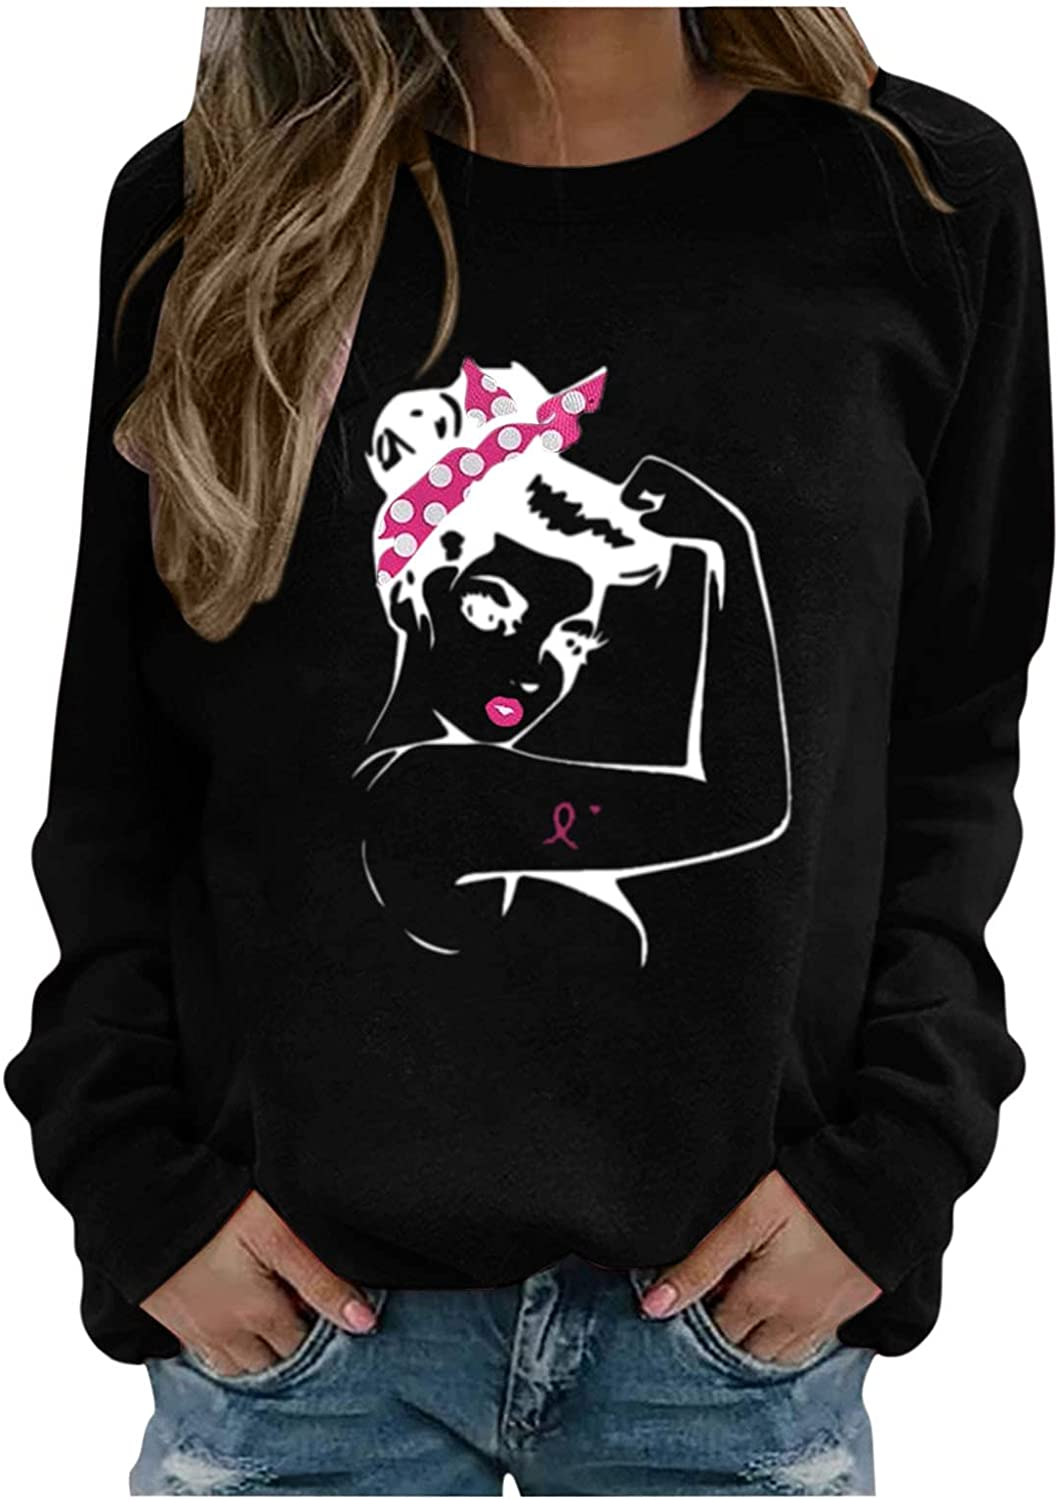 Sweatshirts For Women Ranking TOP18 Breast Cancer High material Print Neck Month Crew Blouse